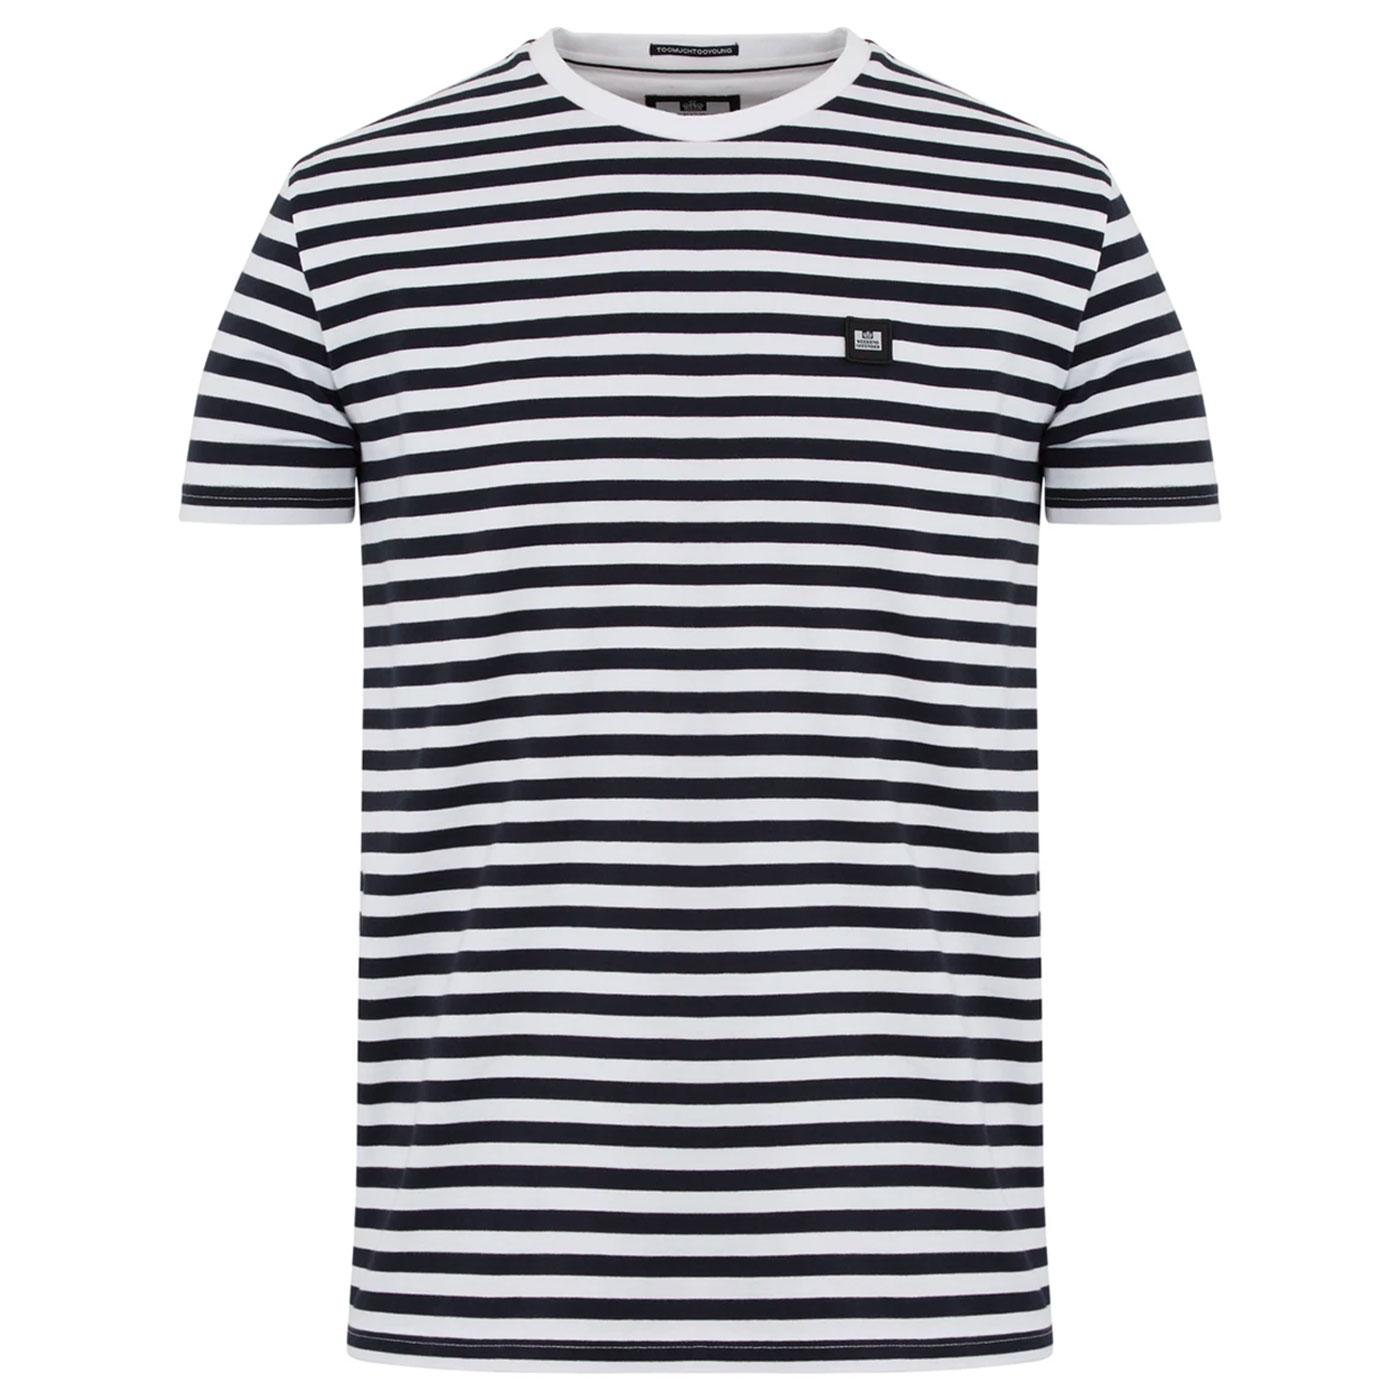 Flamenco WEEKEND OFFENDER Retro Stripe Tee (N)